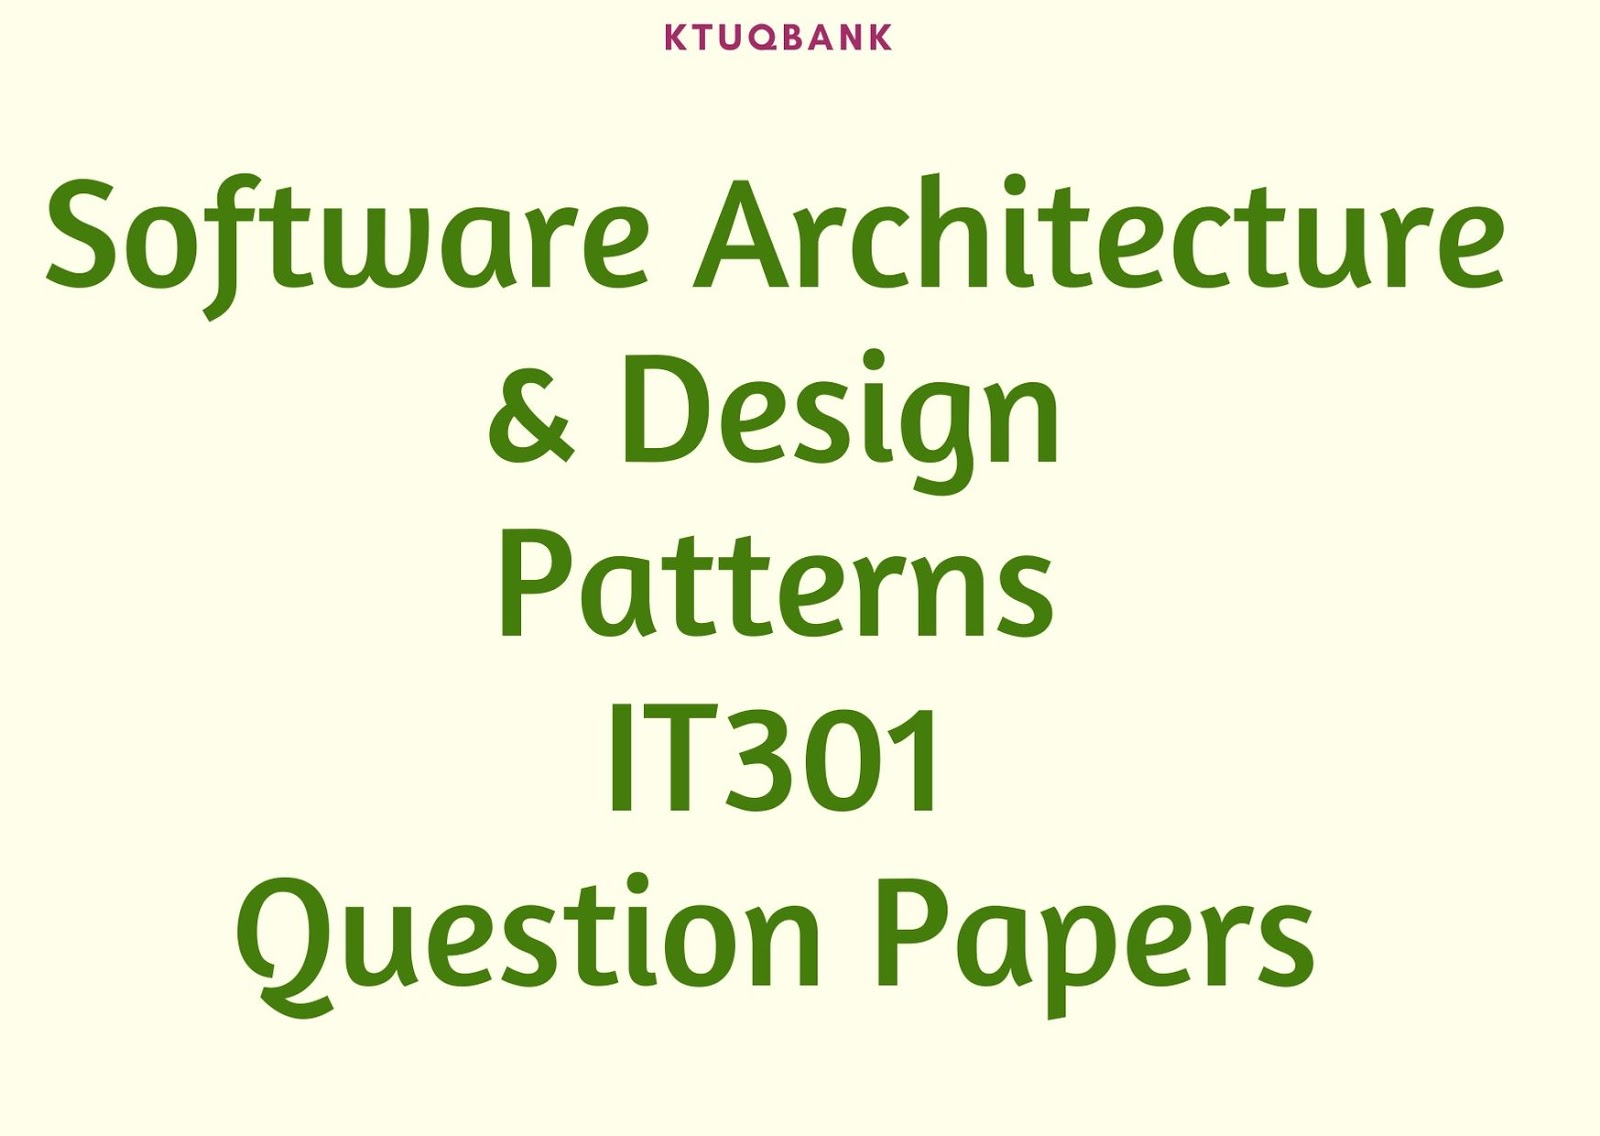 Software Architecture & Design Patterns | IT301 | Question Papers (2015 batch)